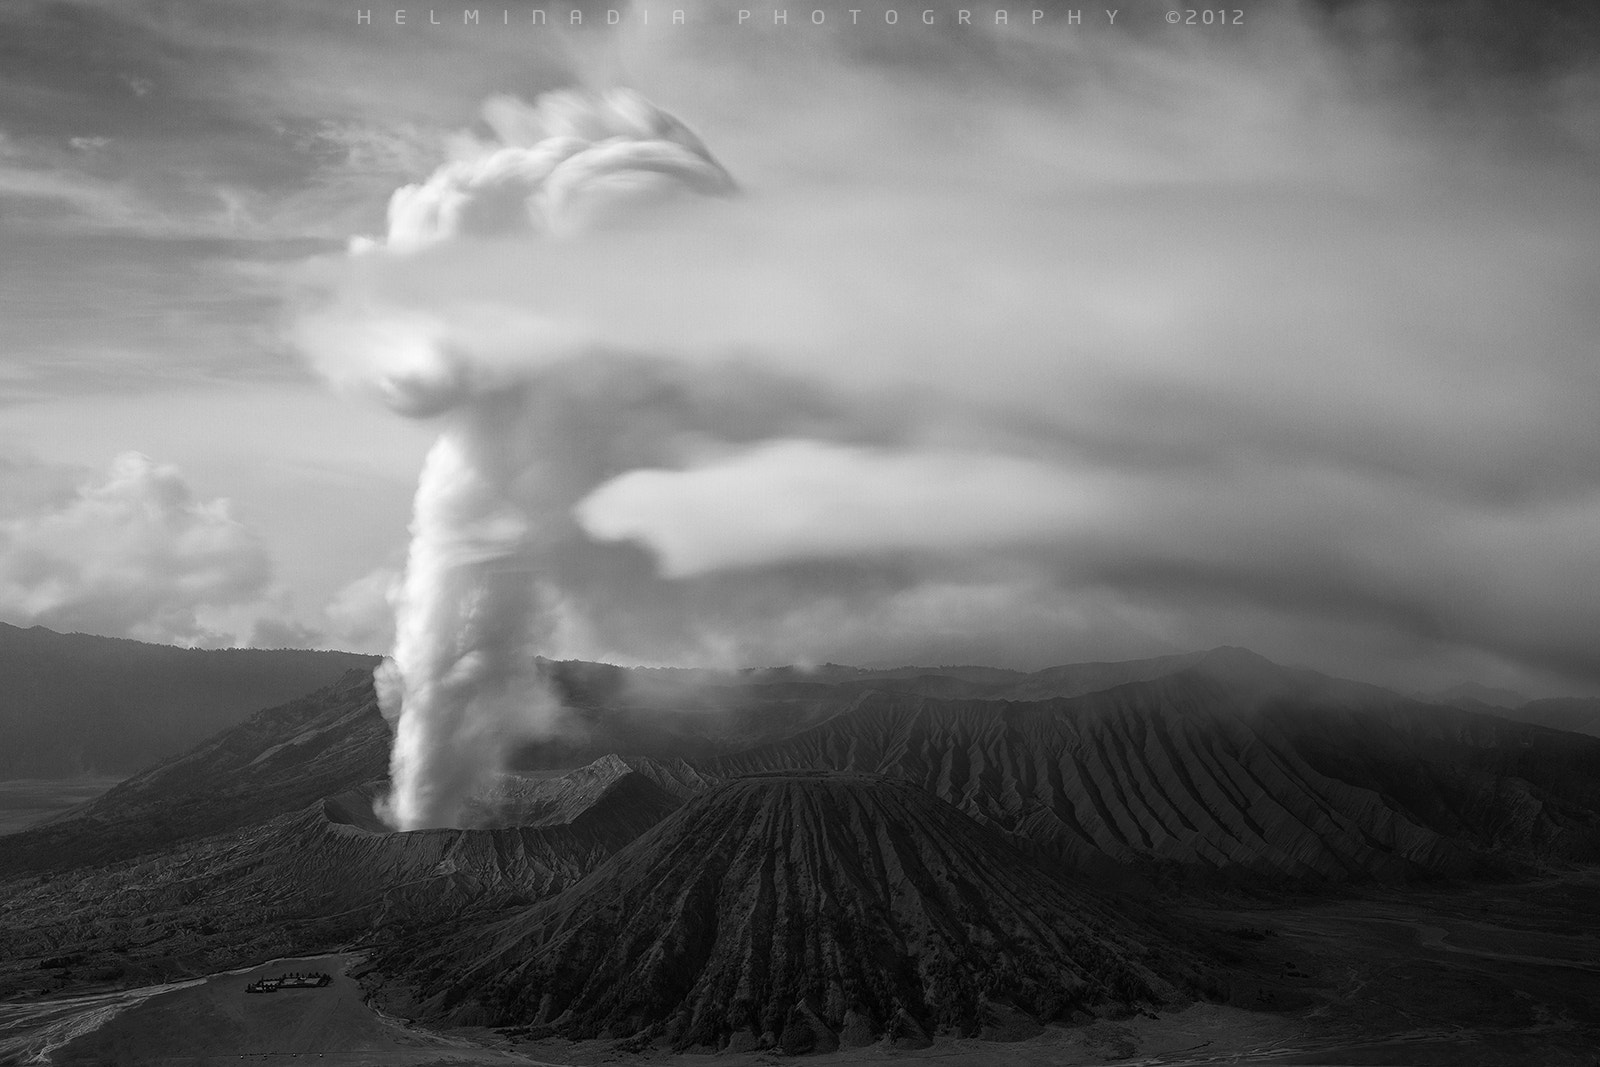 Photograph Volcanic Ash and Smokes by Helminadia Ranford on 500px